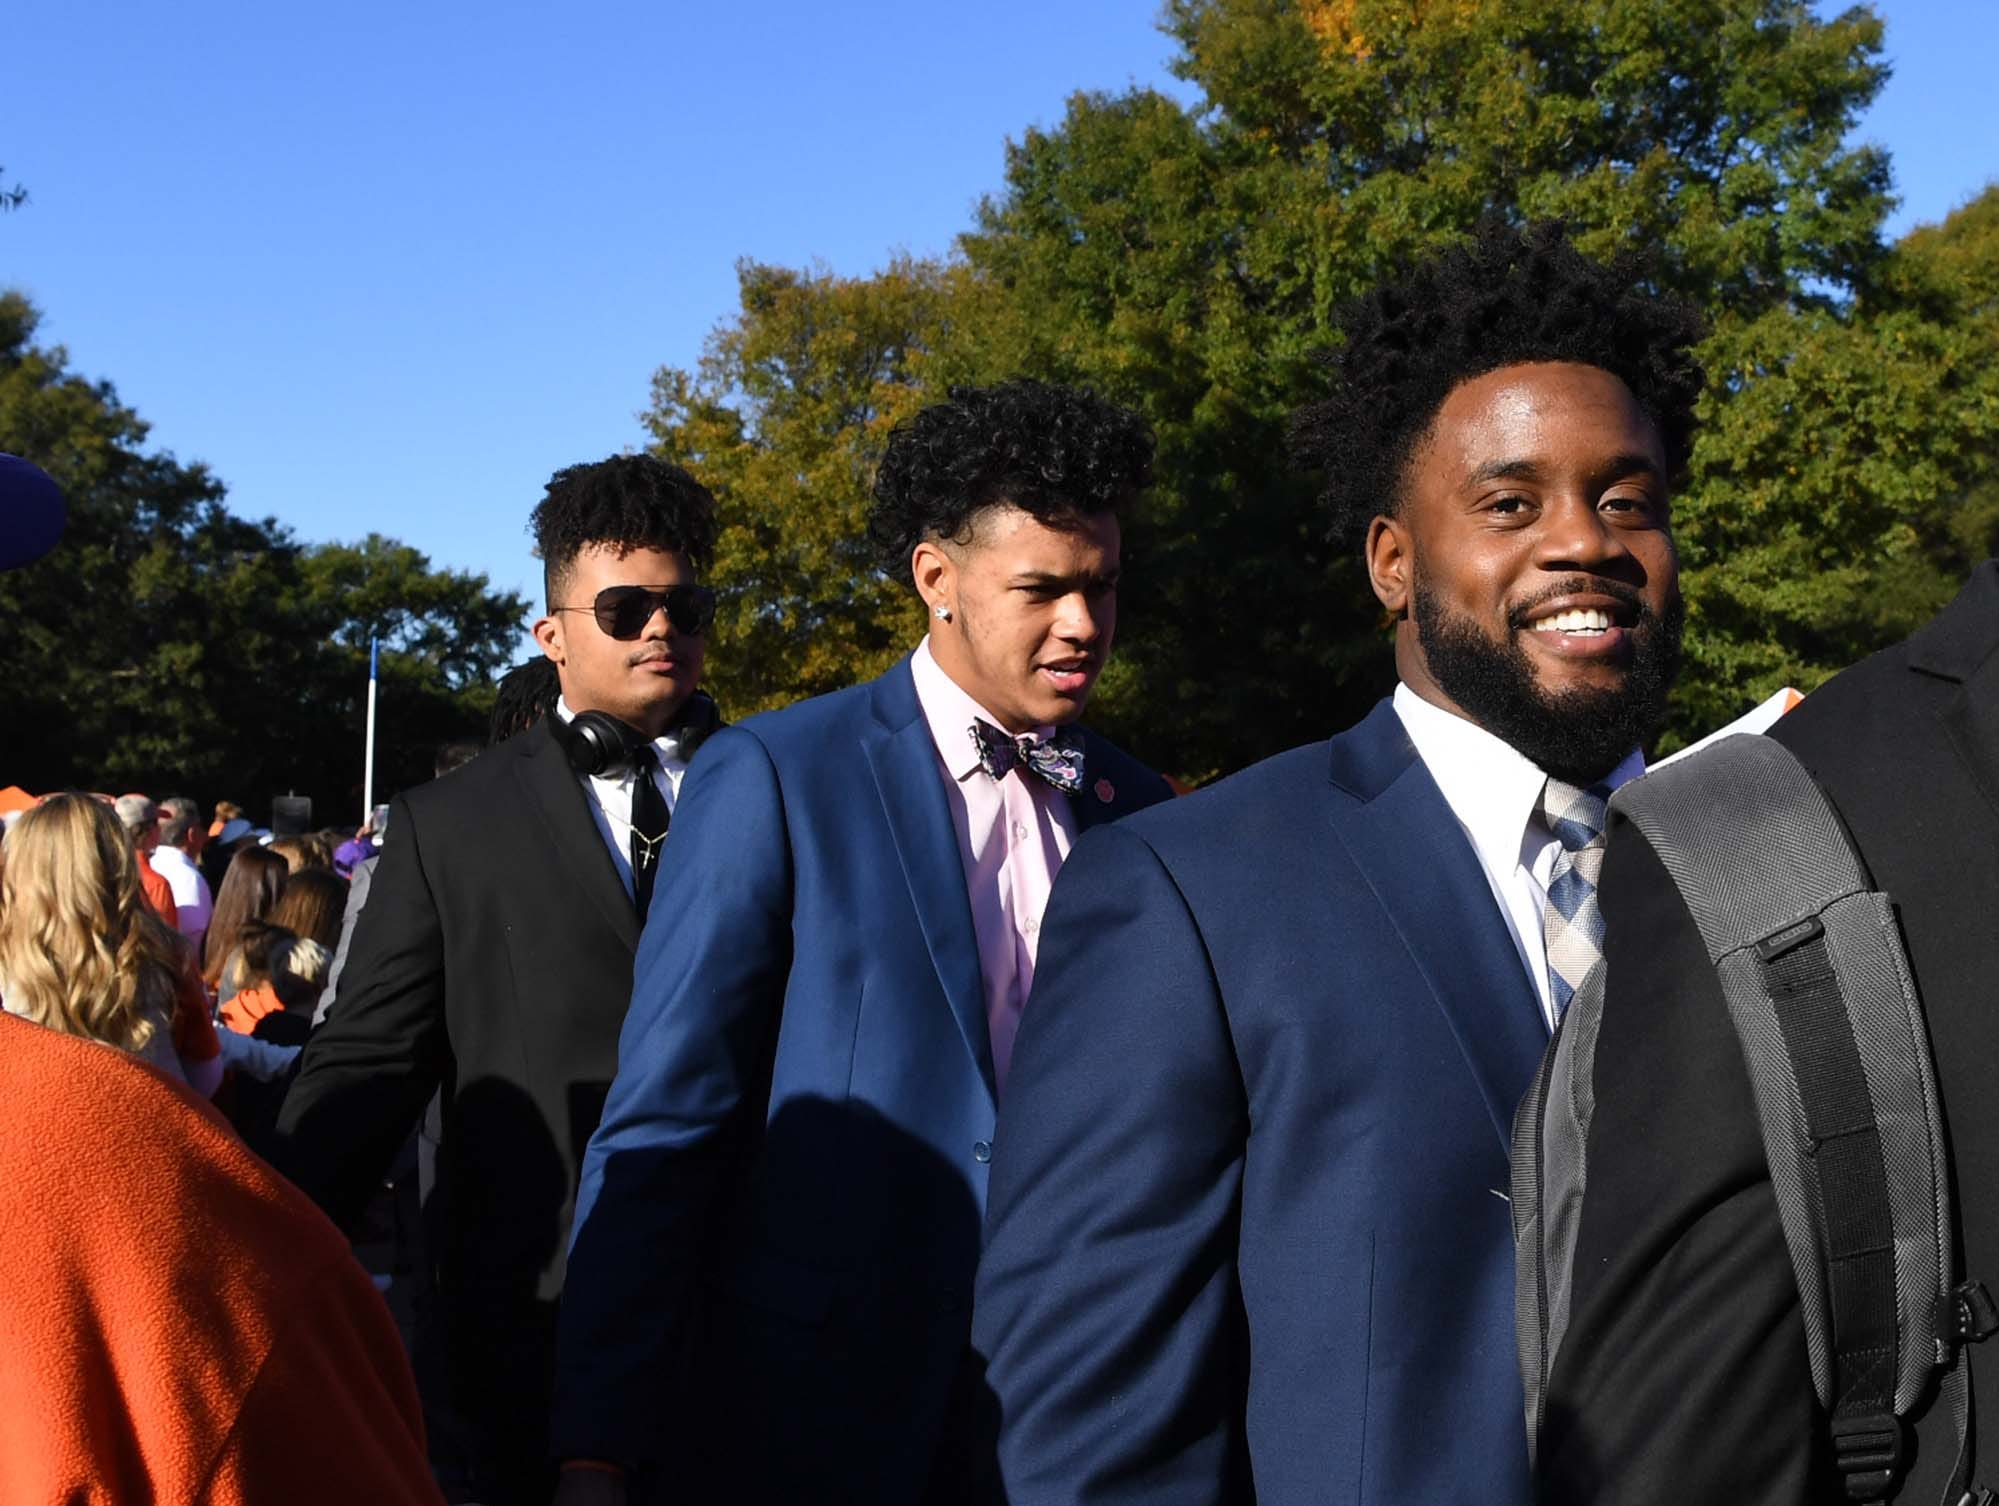 Clemson linebacker Kendall Joseph greets fans during Tiger Walk before the game in Memorial Stadium on Saturday, November 3, 2018.